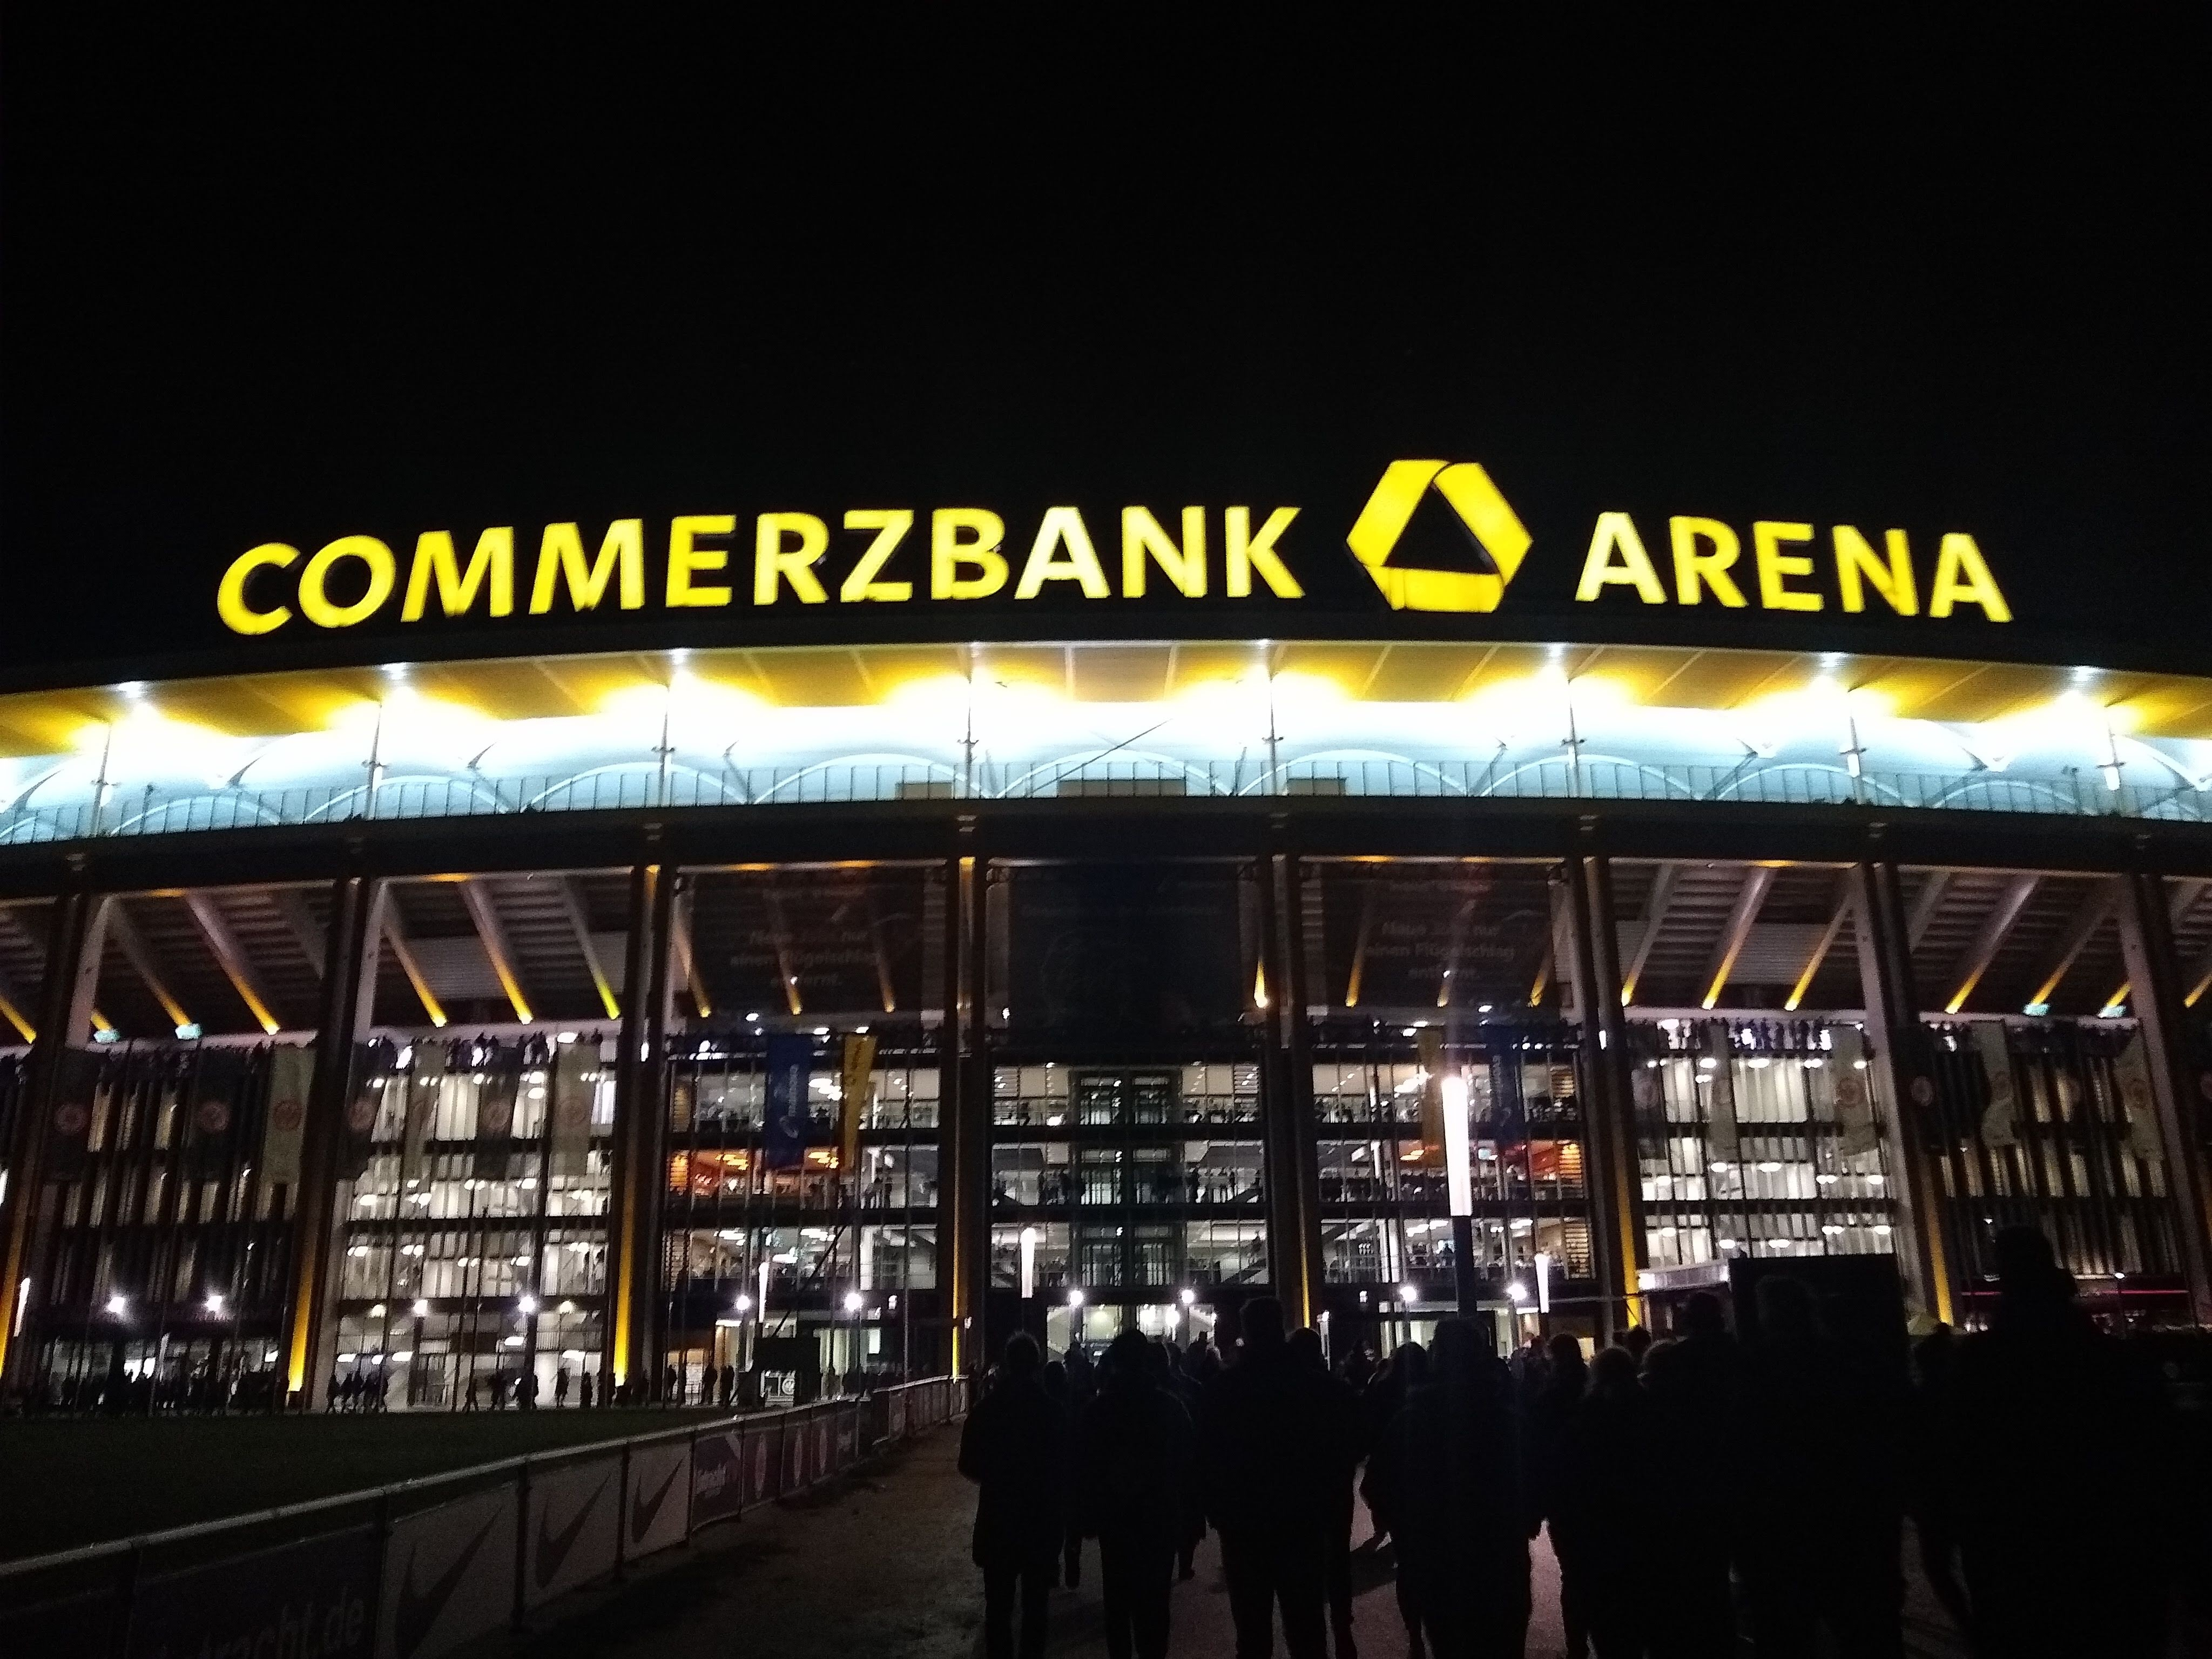 Commerzbank arena football stadium at night